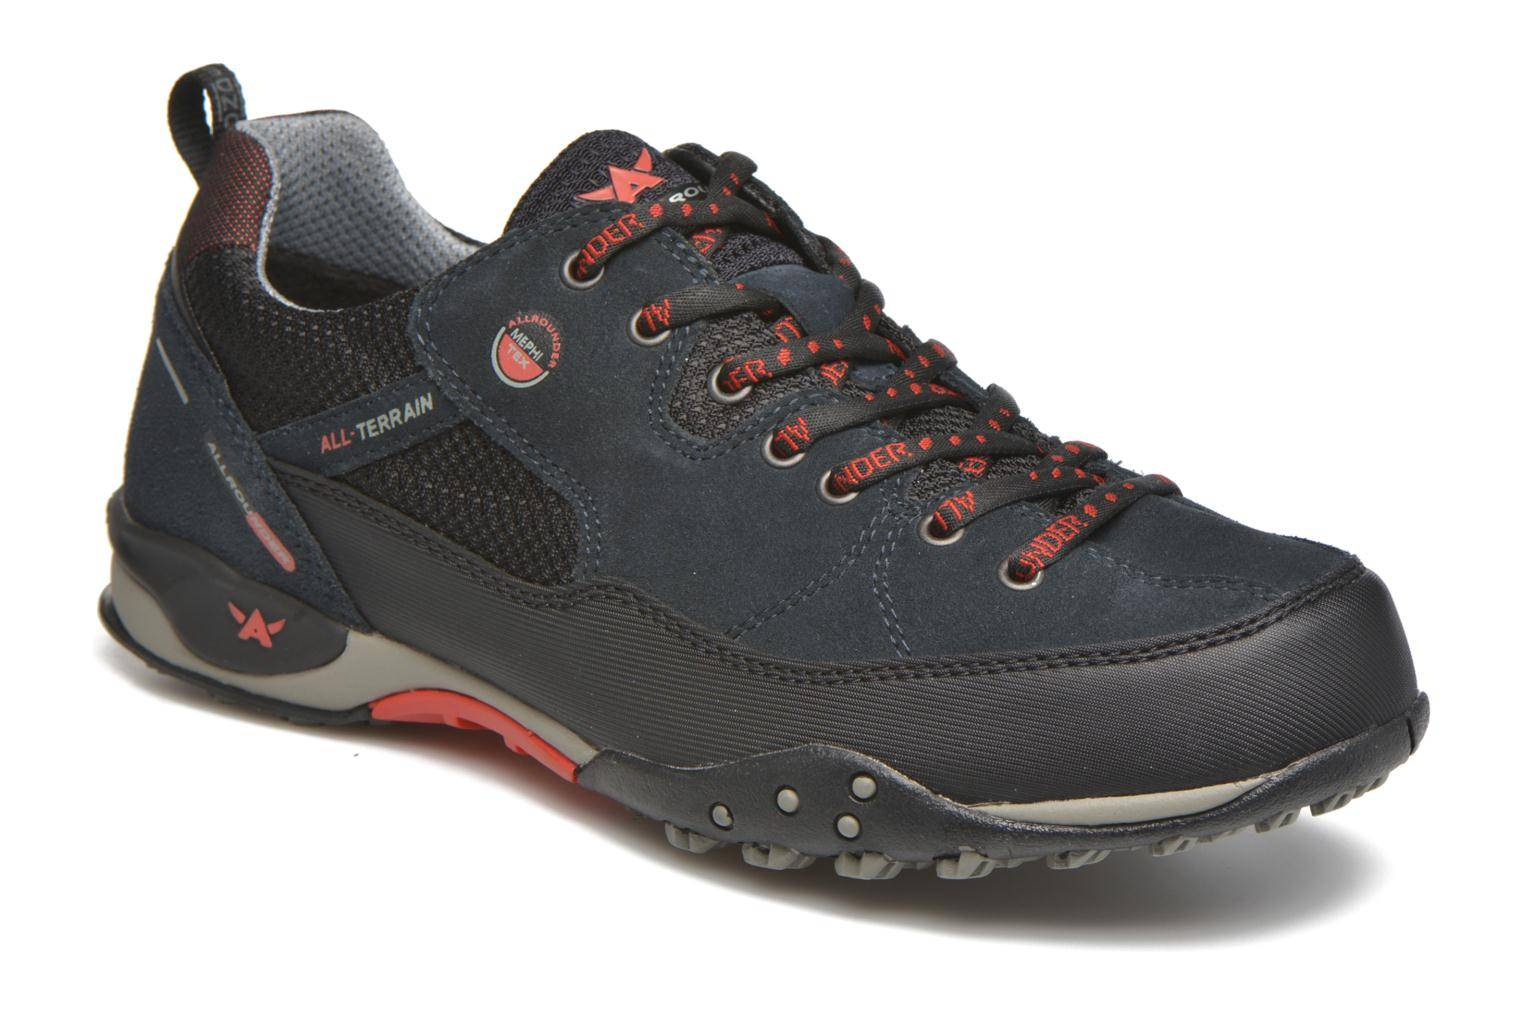 Allrounder by Mephisto Chaussures de sport Allrounder by Mephisto( Homme )